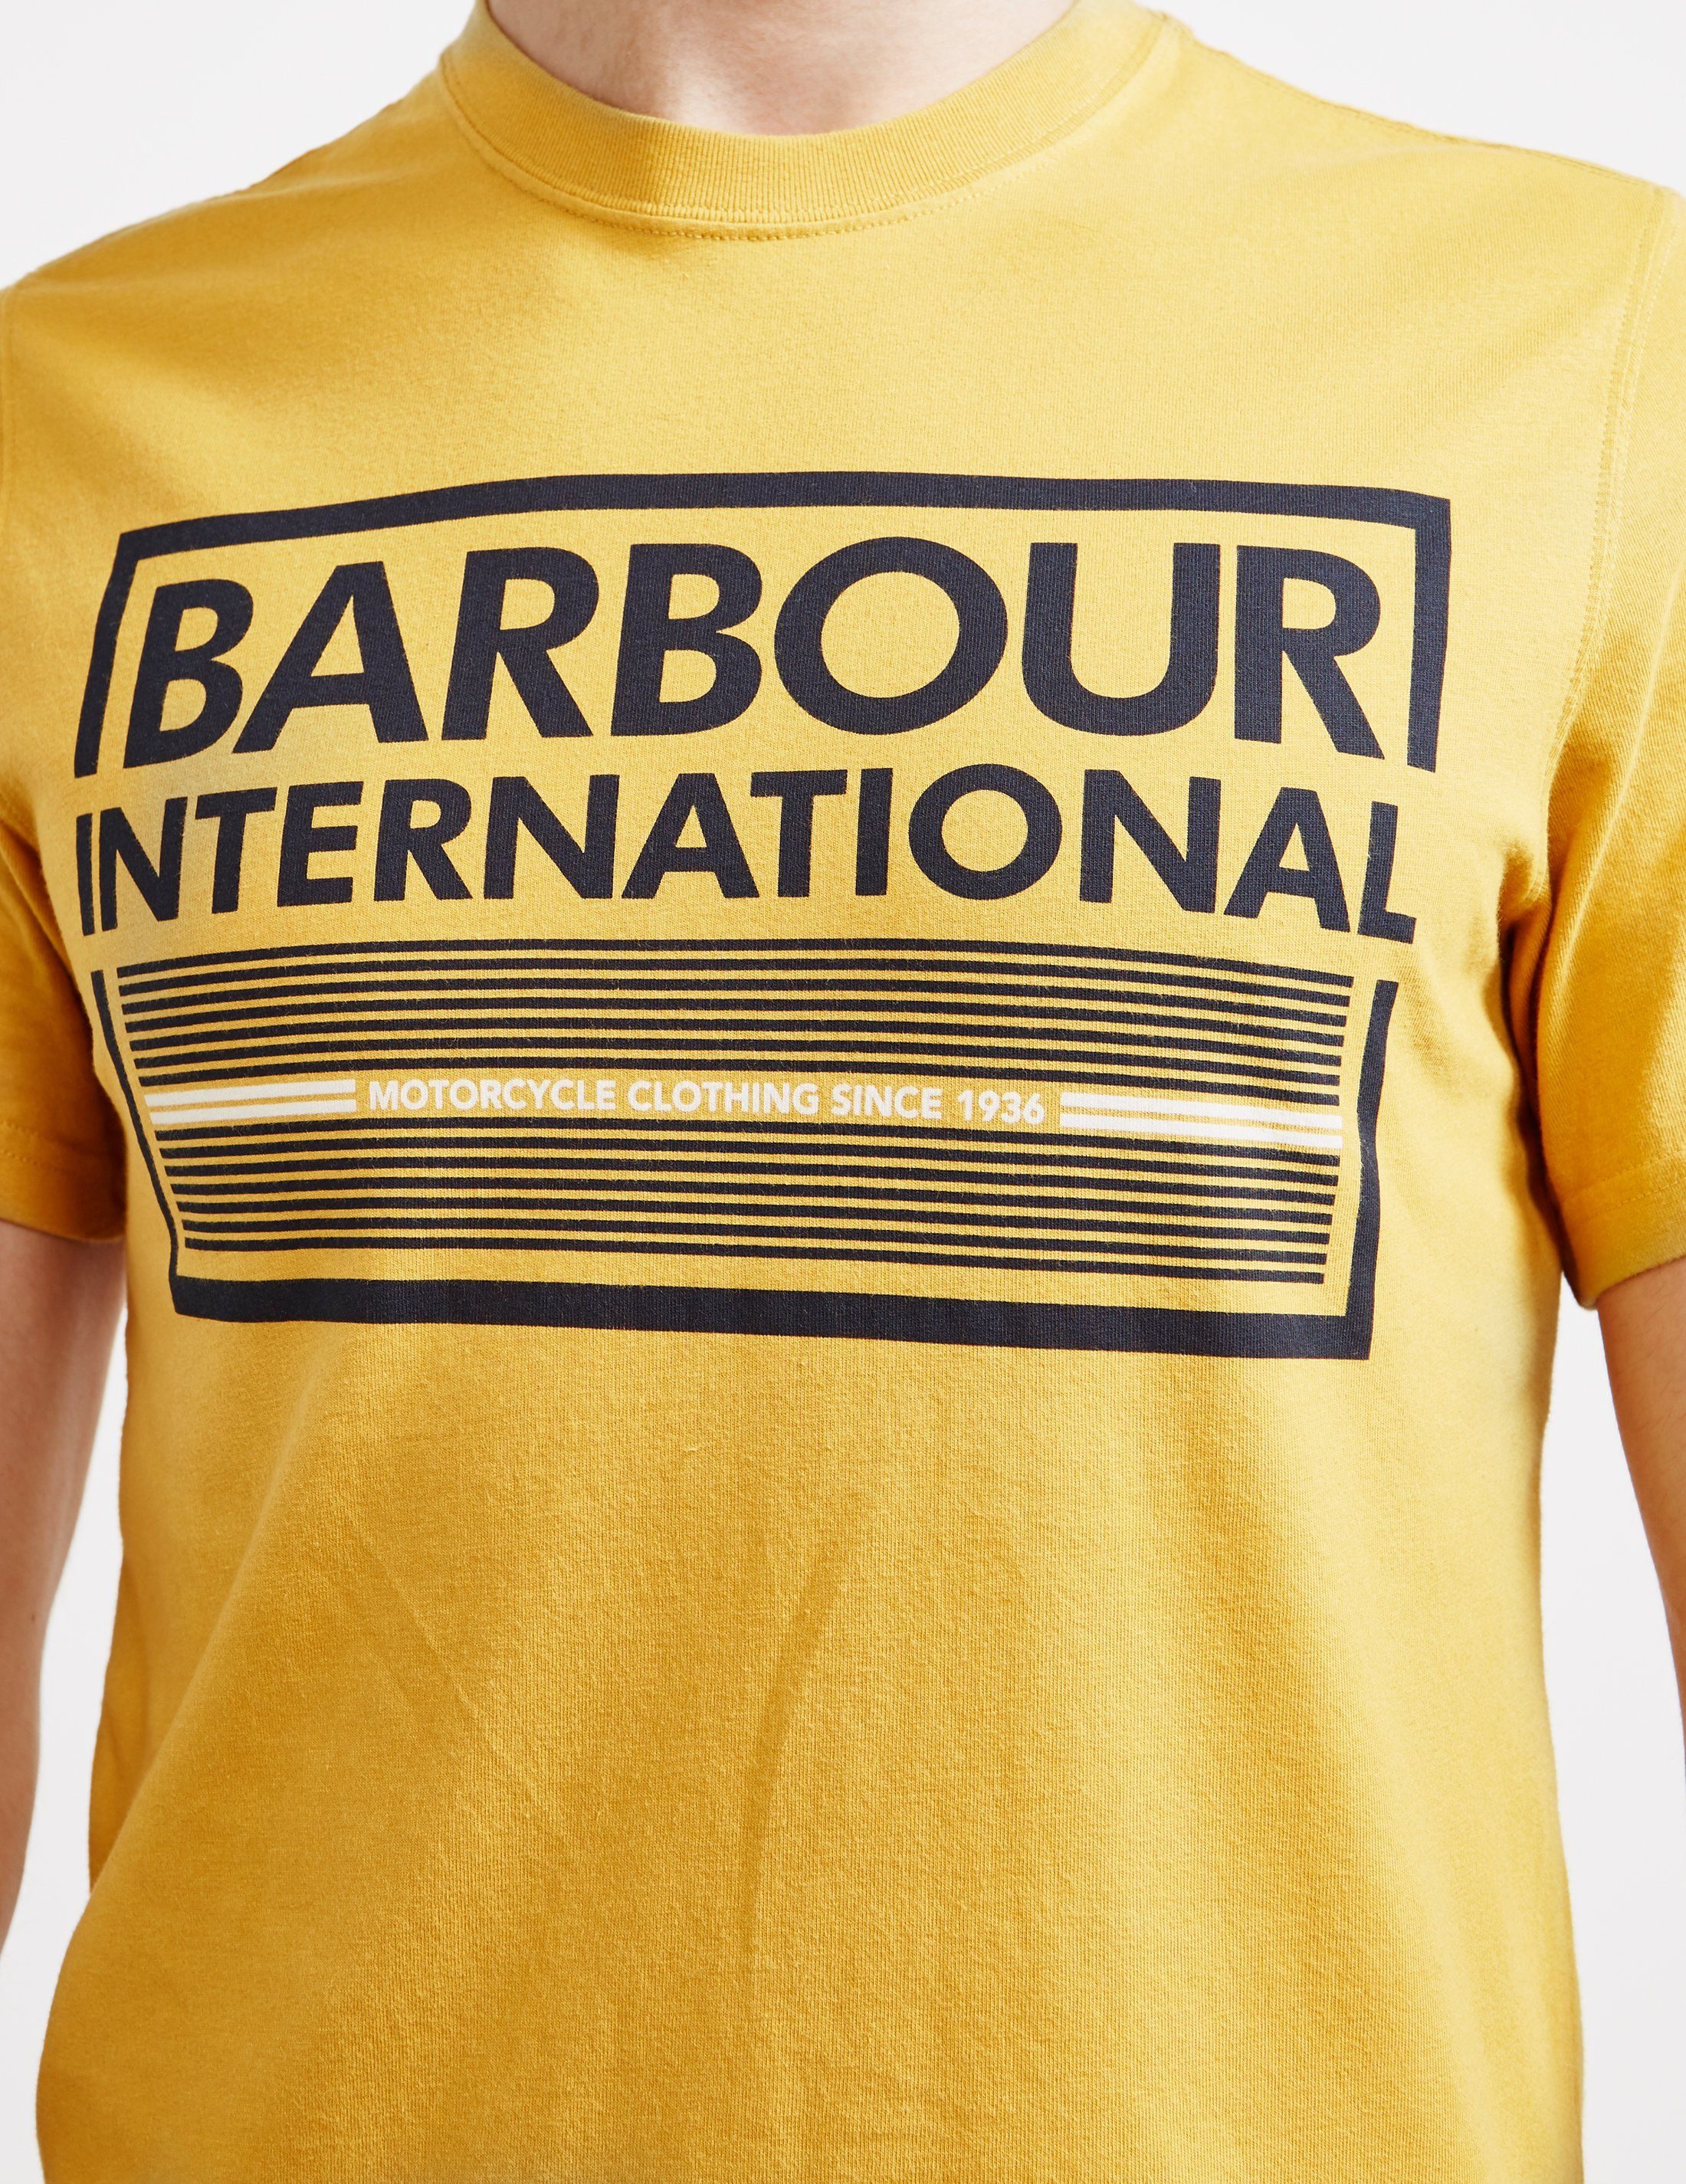 Barbour International Grill Short Sleeve T-Shirt